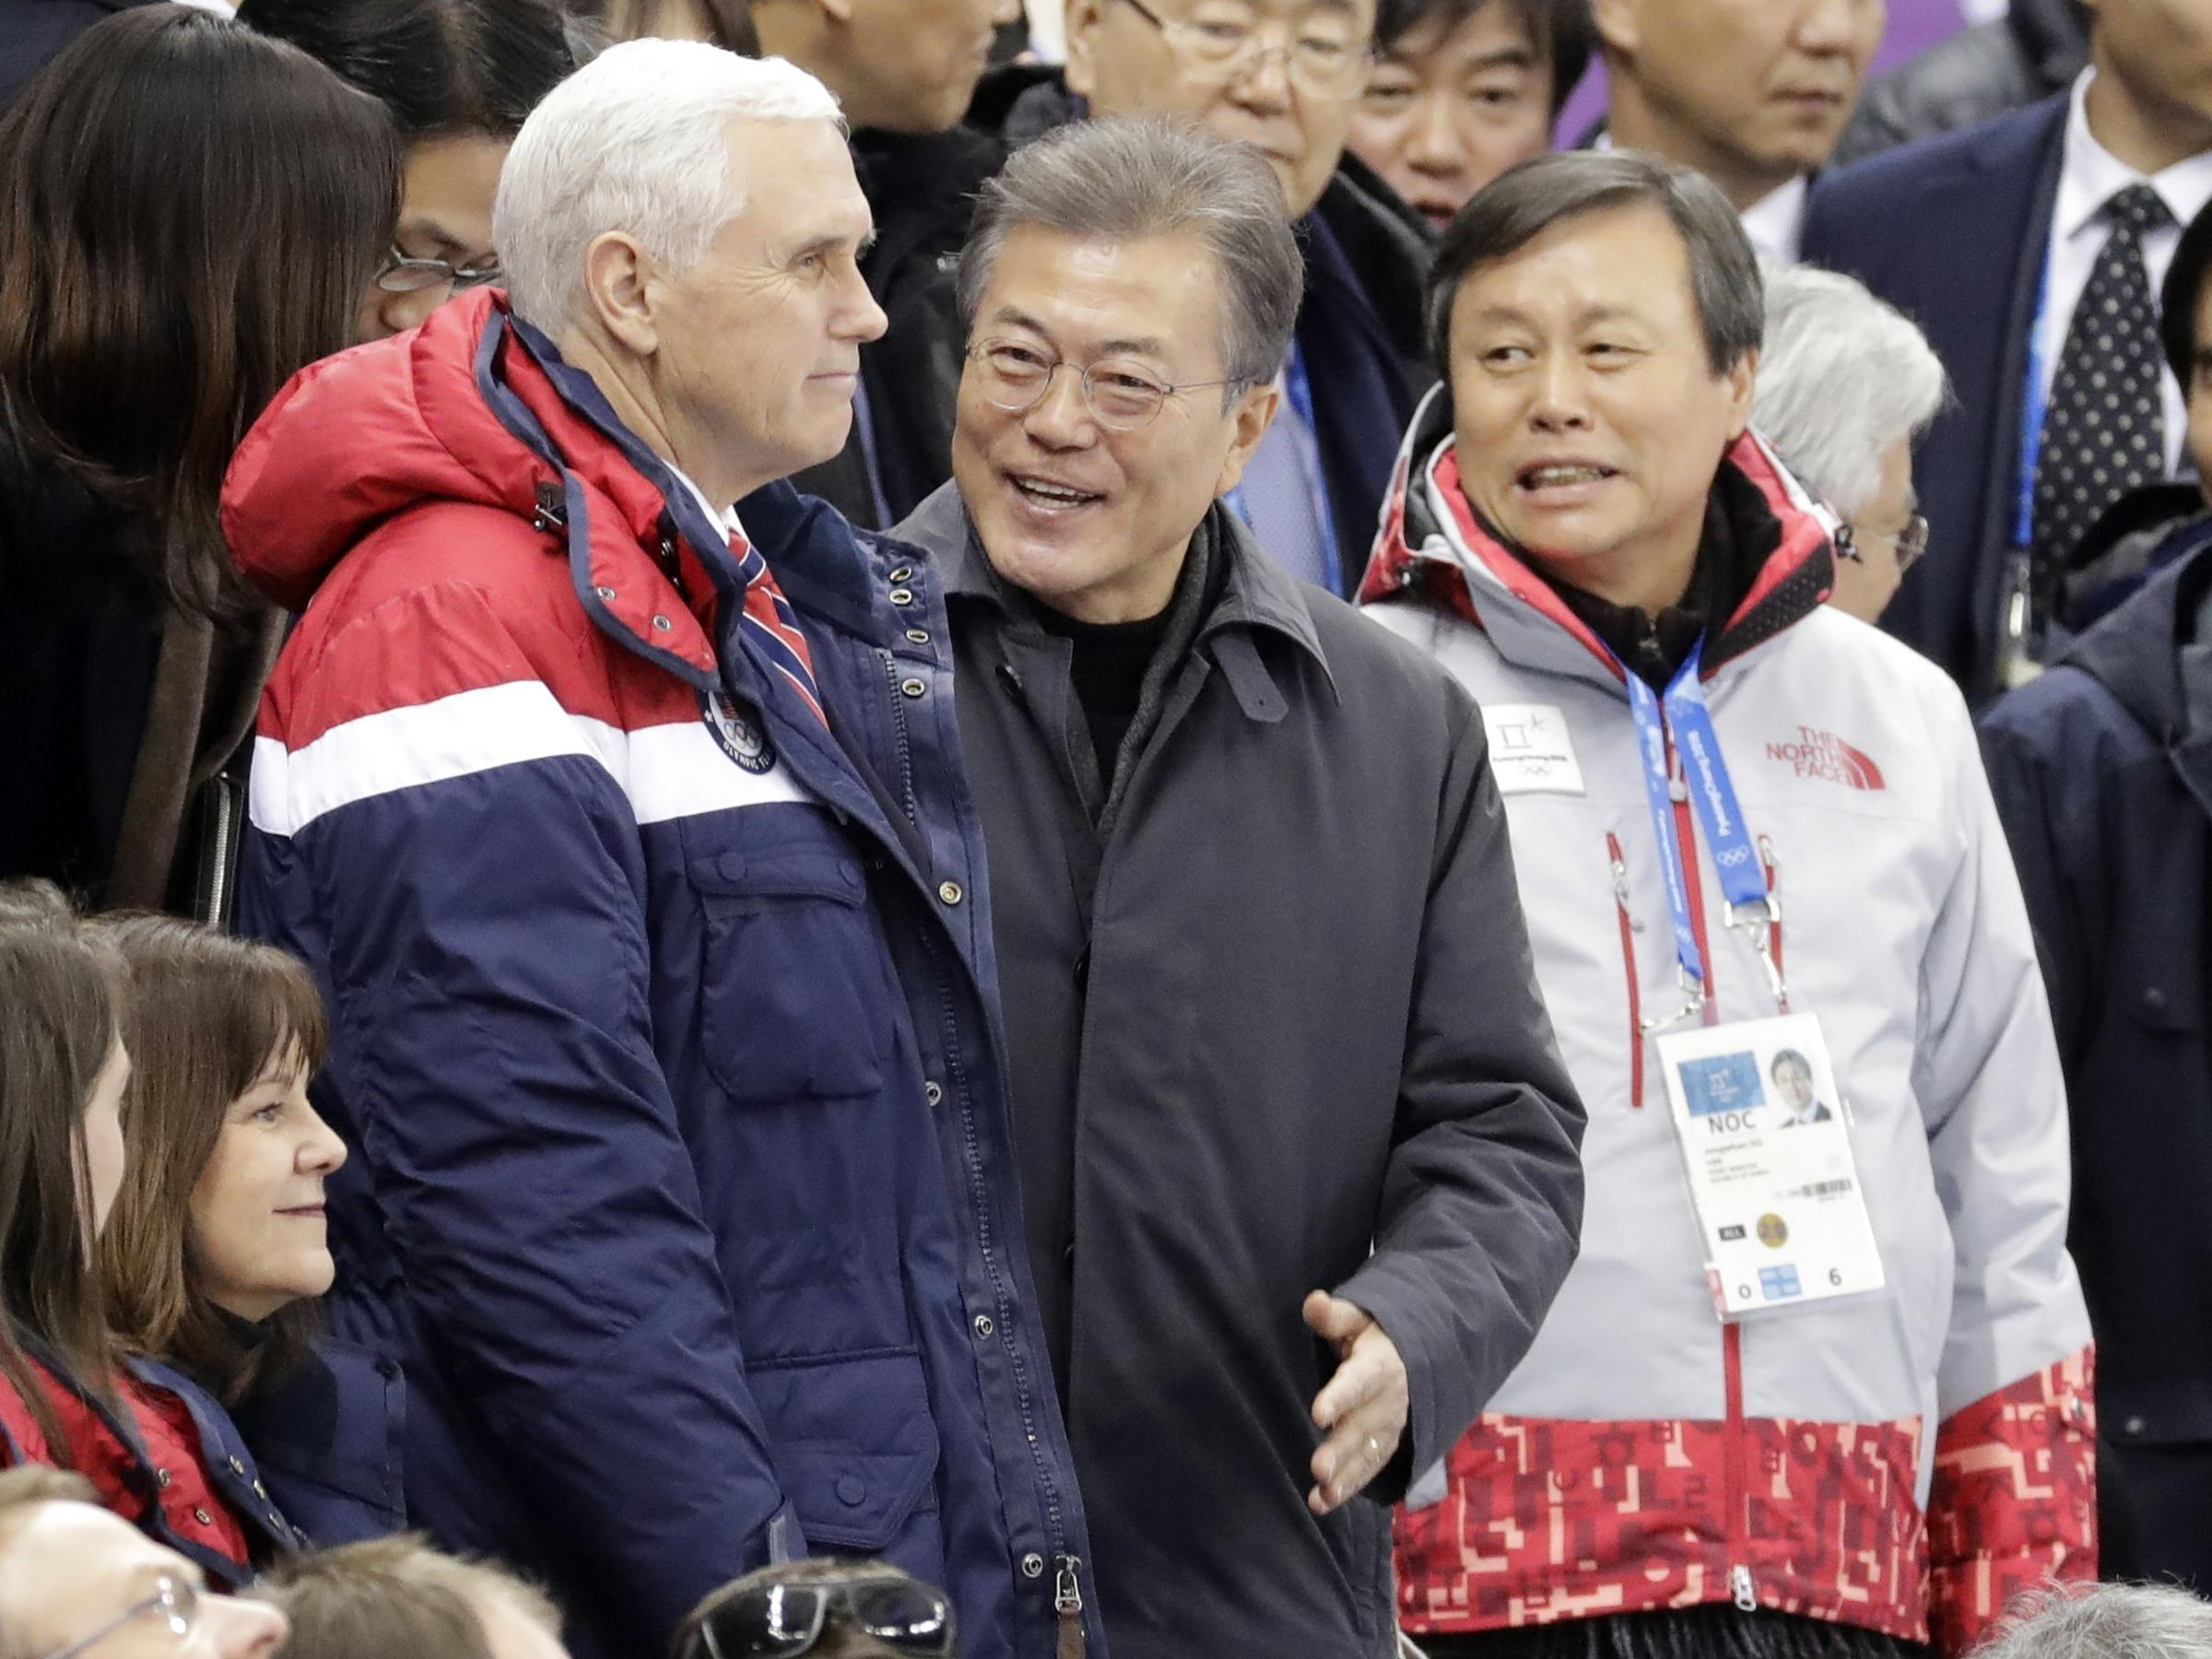 US Open to Talk About Talks With North Korea